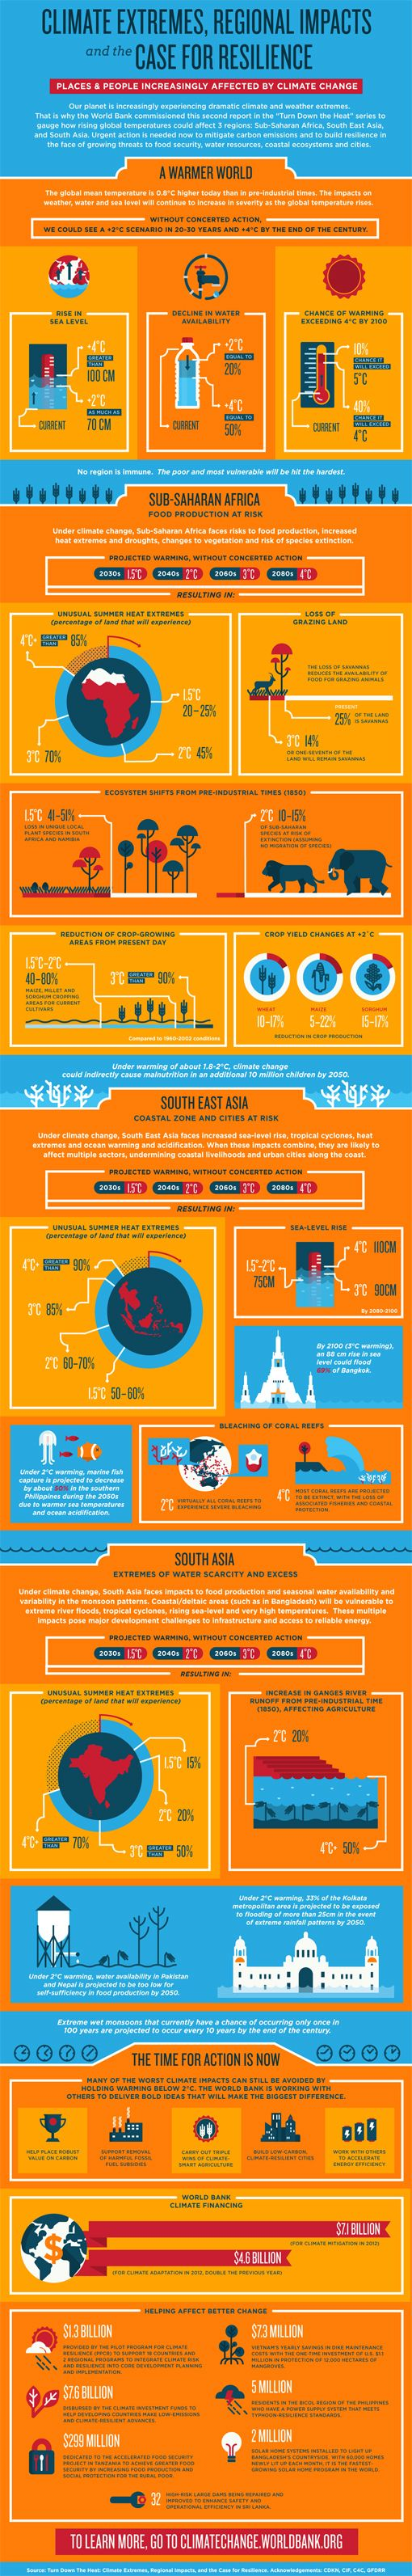 Infographic: What Climate Change Means for Africa and Asia